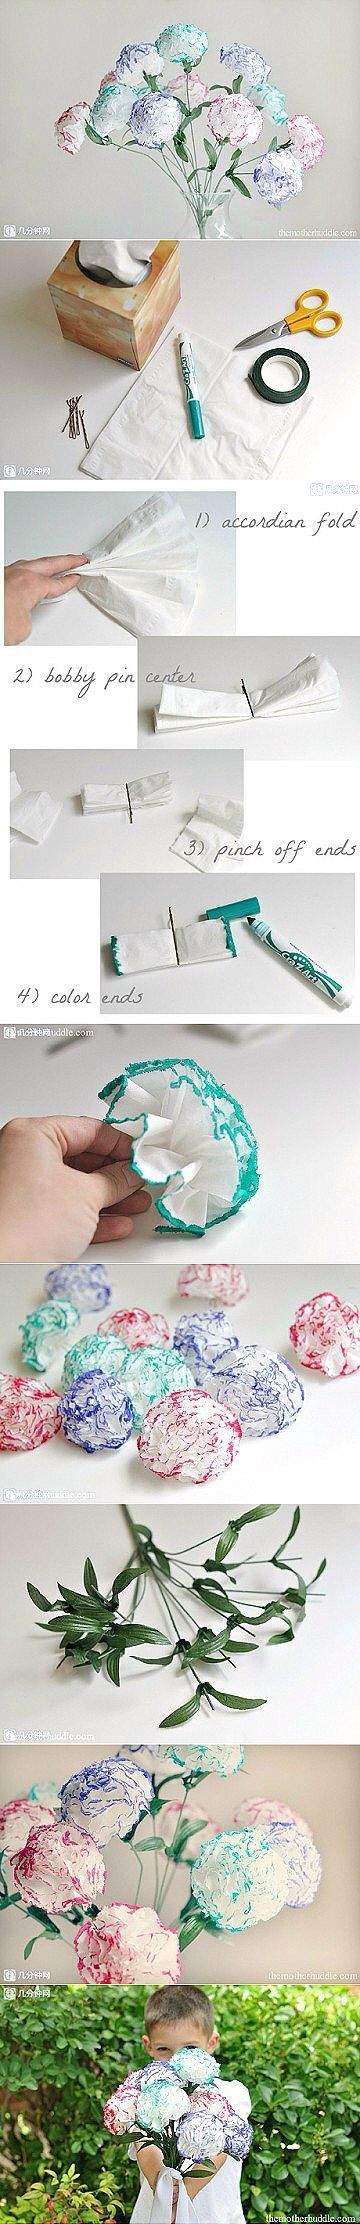 Simple tissue flowers